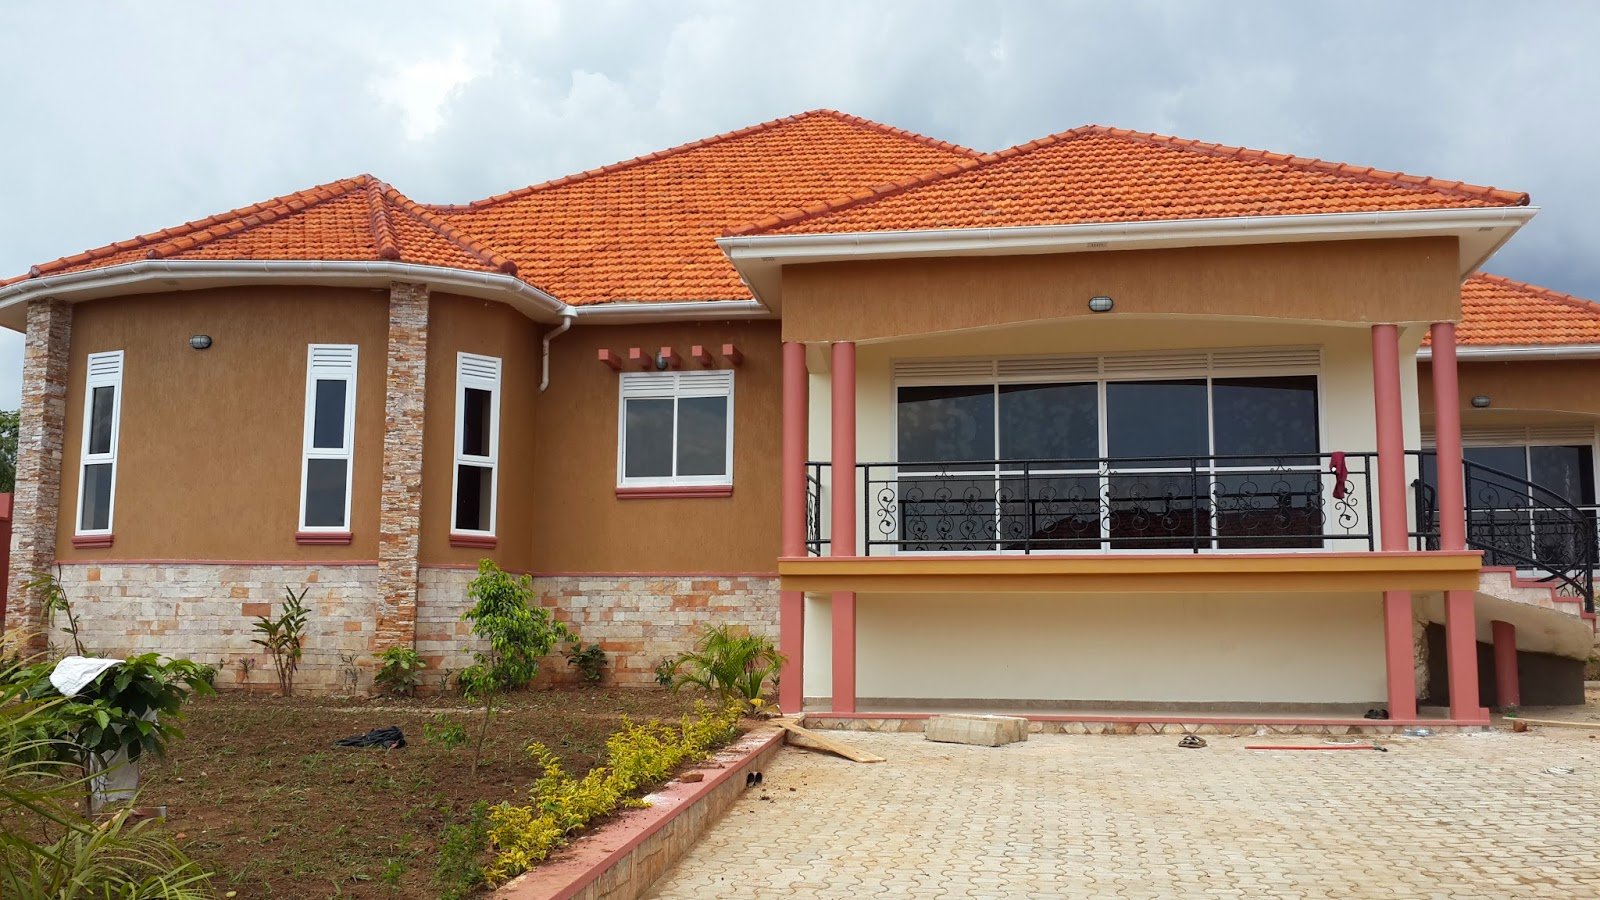 Houses for sale kampala uganda house for sale kira for House pictures for sale